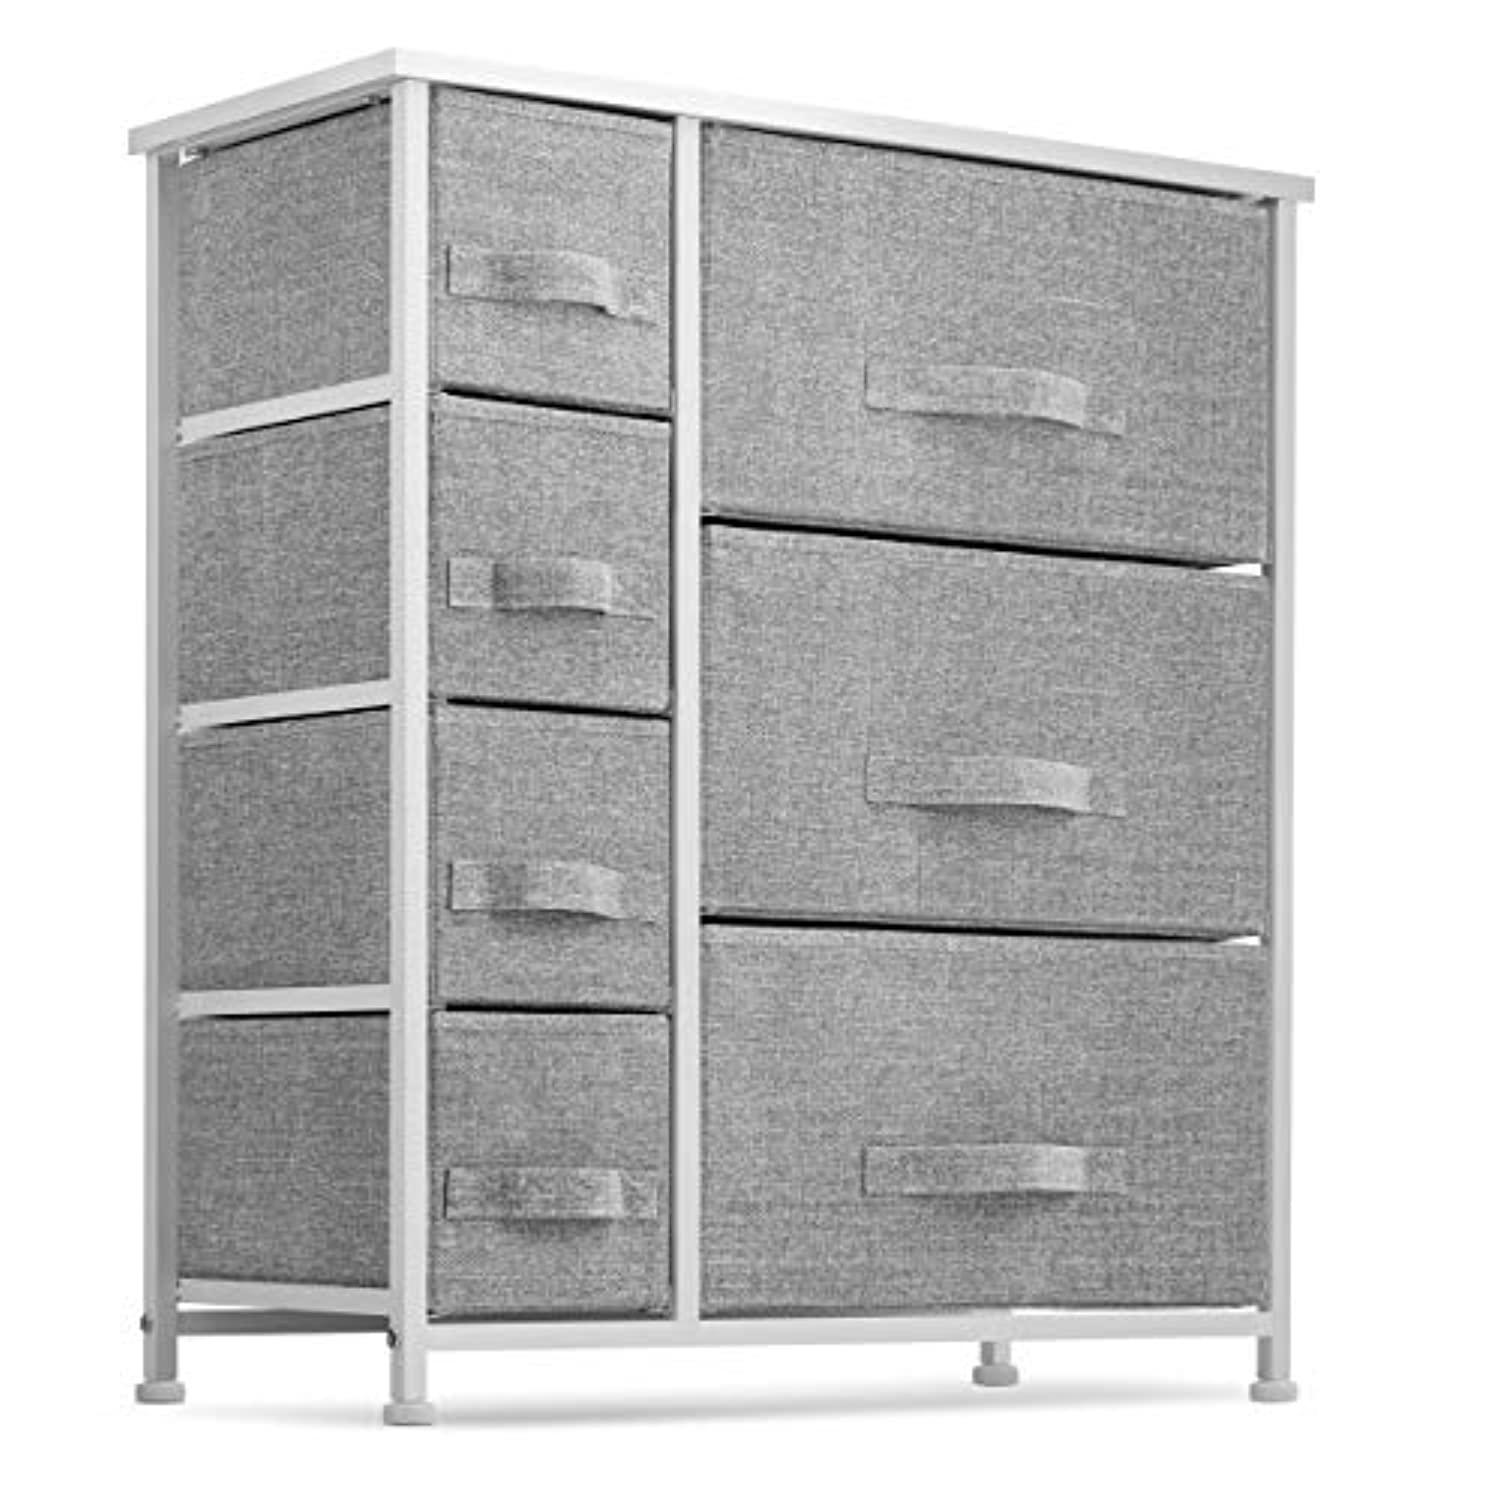 Classier: Buy Seseno 7 Drawers Dresser - Furniture Storage Tower Unit for Bedroom, Hallway, Closet, Office Organization - Steel Frame, Wood Top, Easy Pull Fabric Bins Gray/White